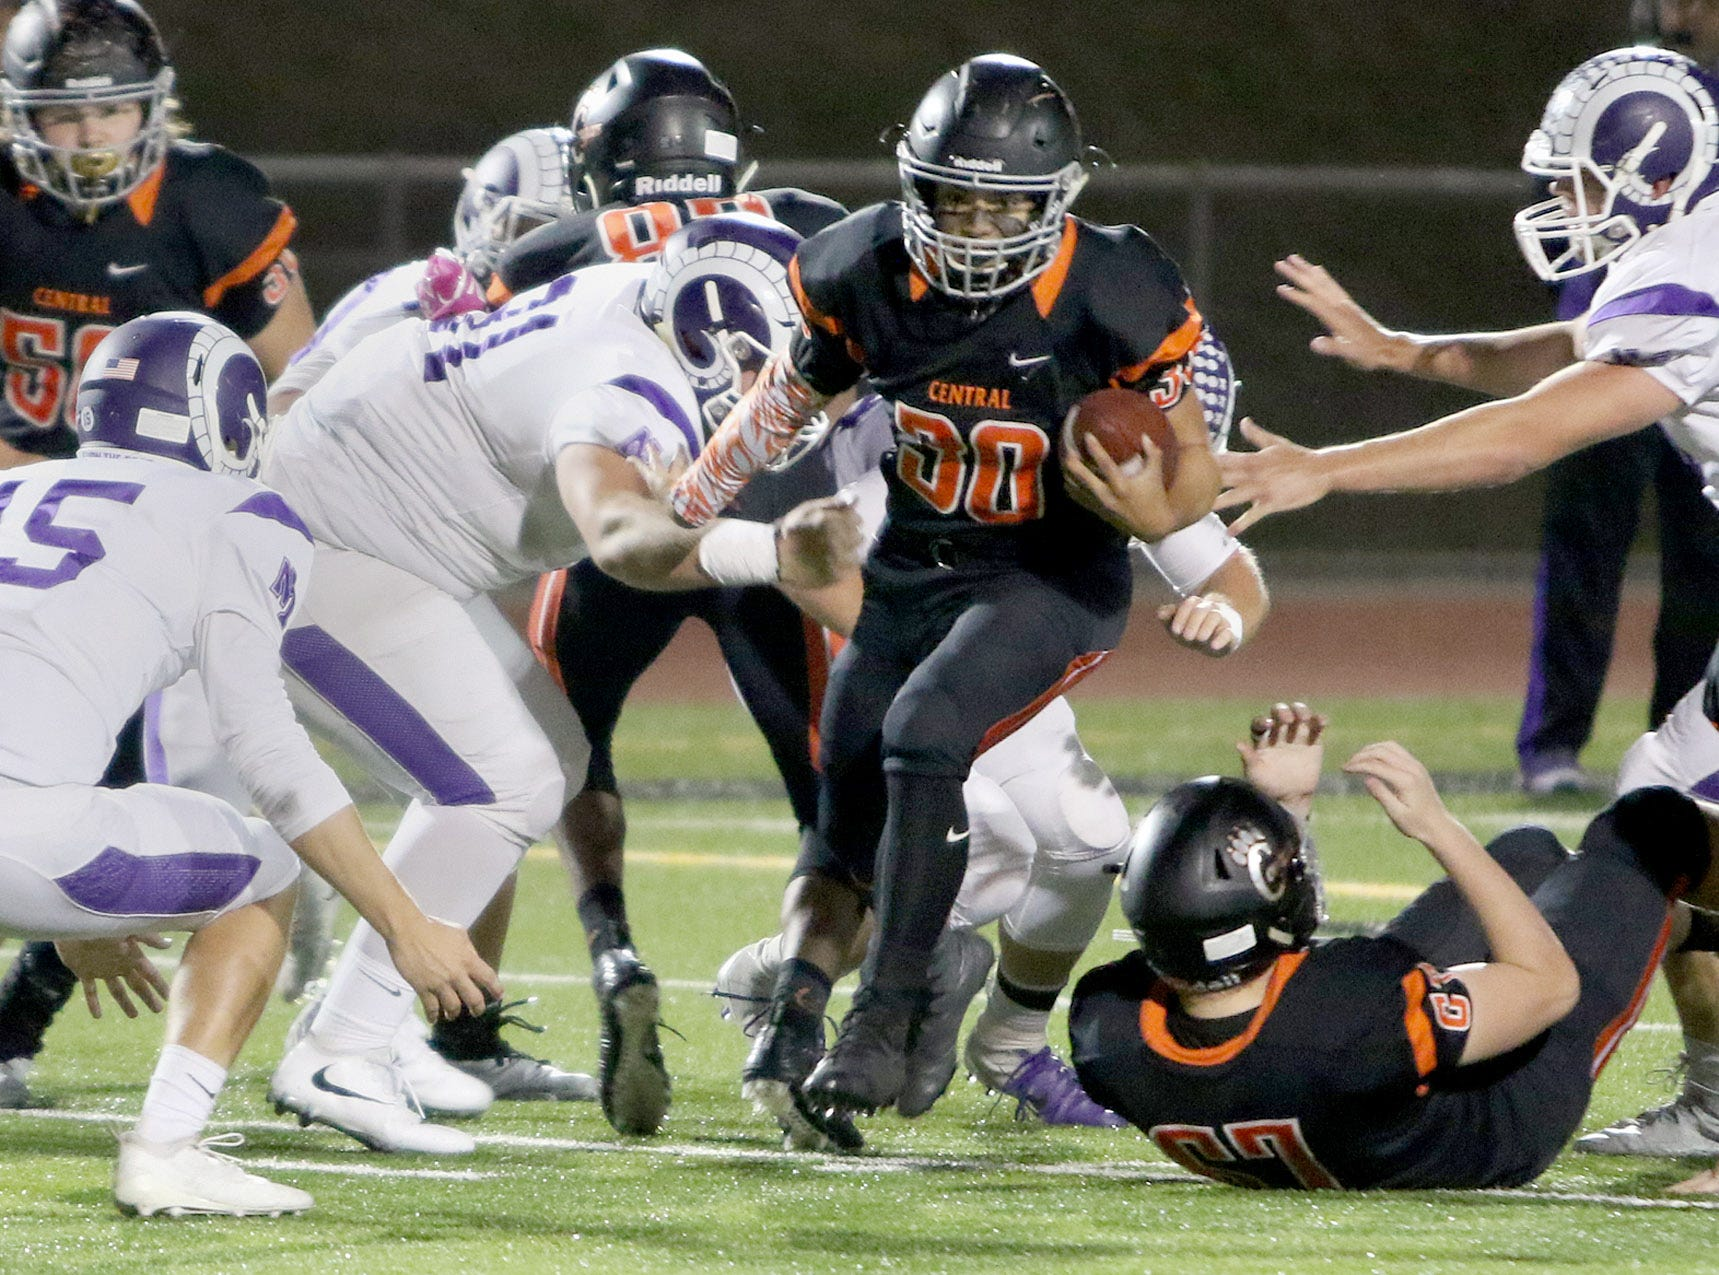 Central Kitsap running back Alex Refilong finds an opening in the North Thurston line for positive yards in a game played Thursday night at Silverdale Stadium.